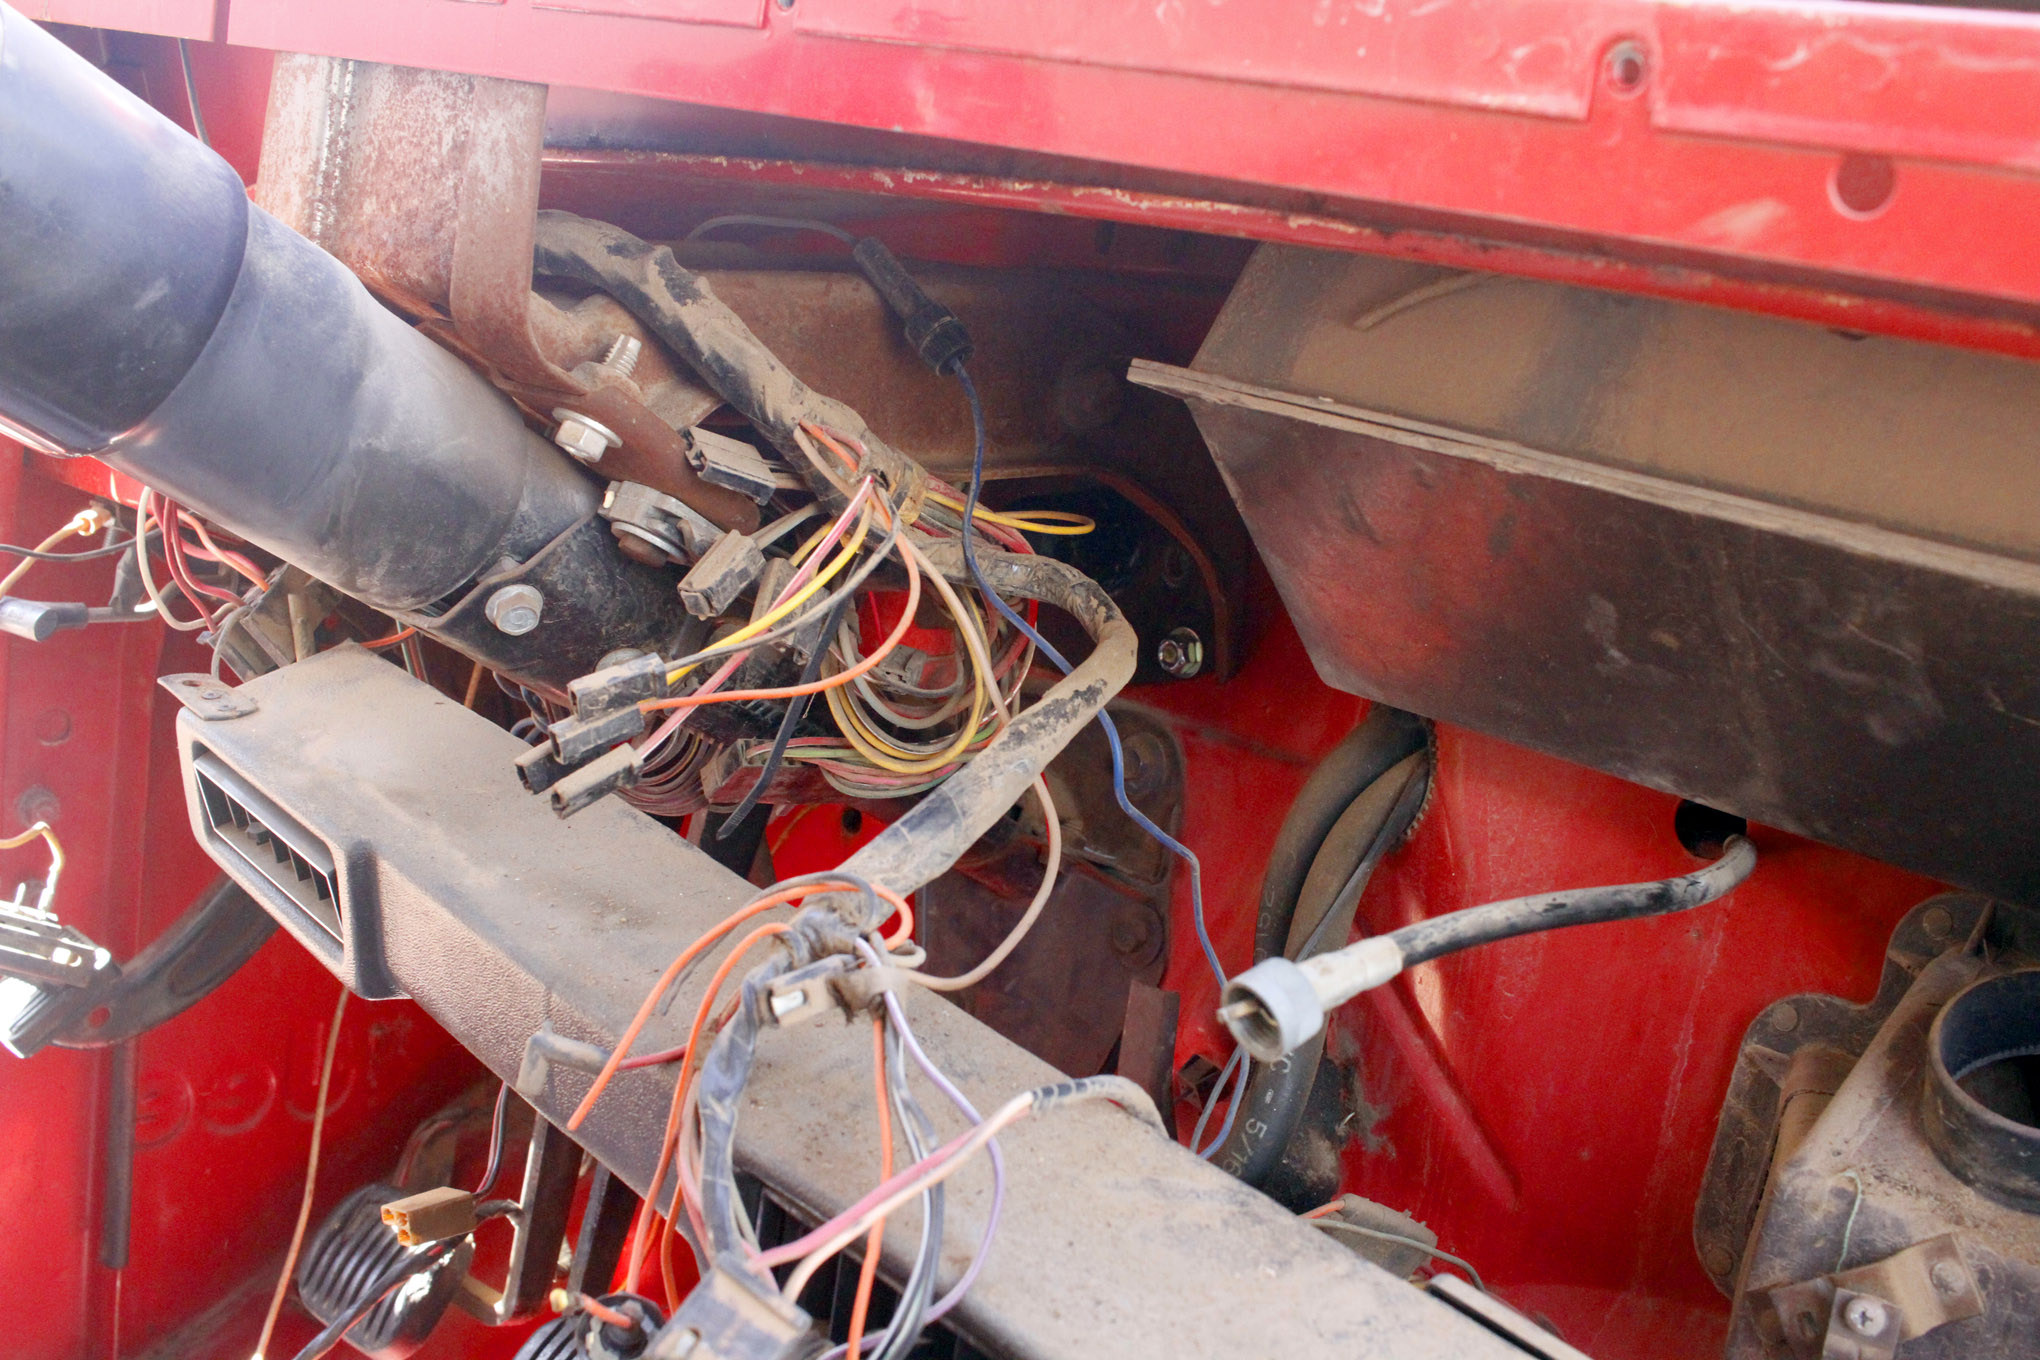 hight resolution of cj7 dash wiring harness route data wiring diagramcj7 dash wiring 17